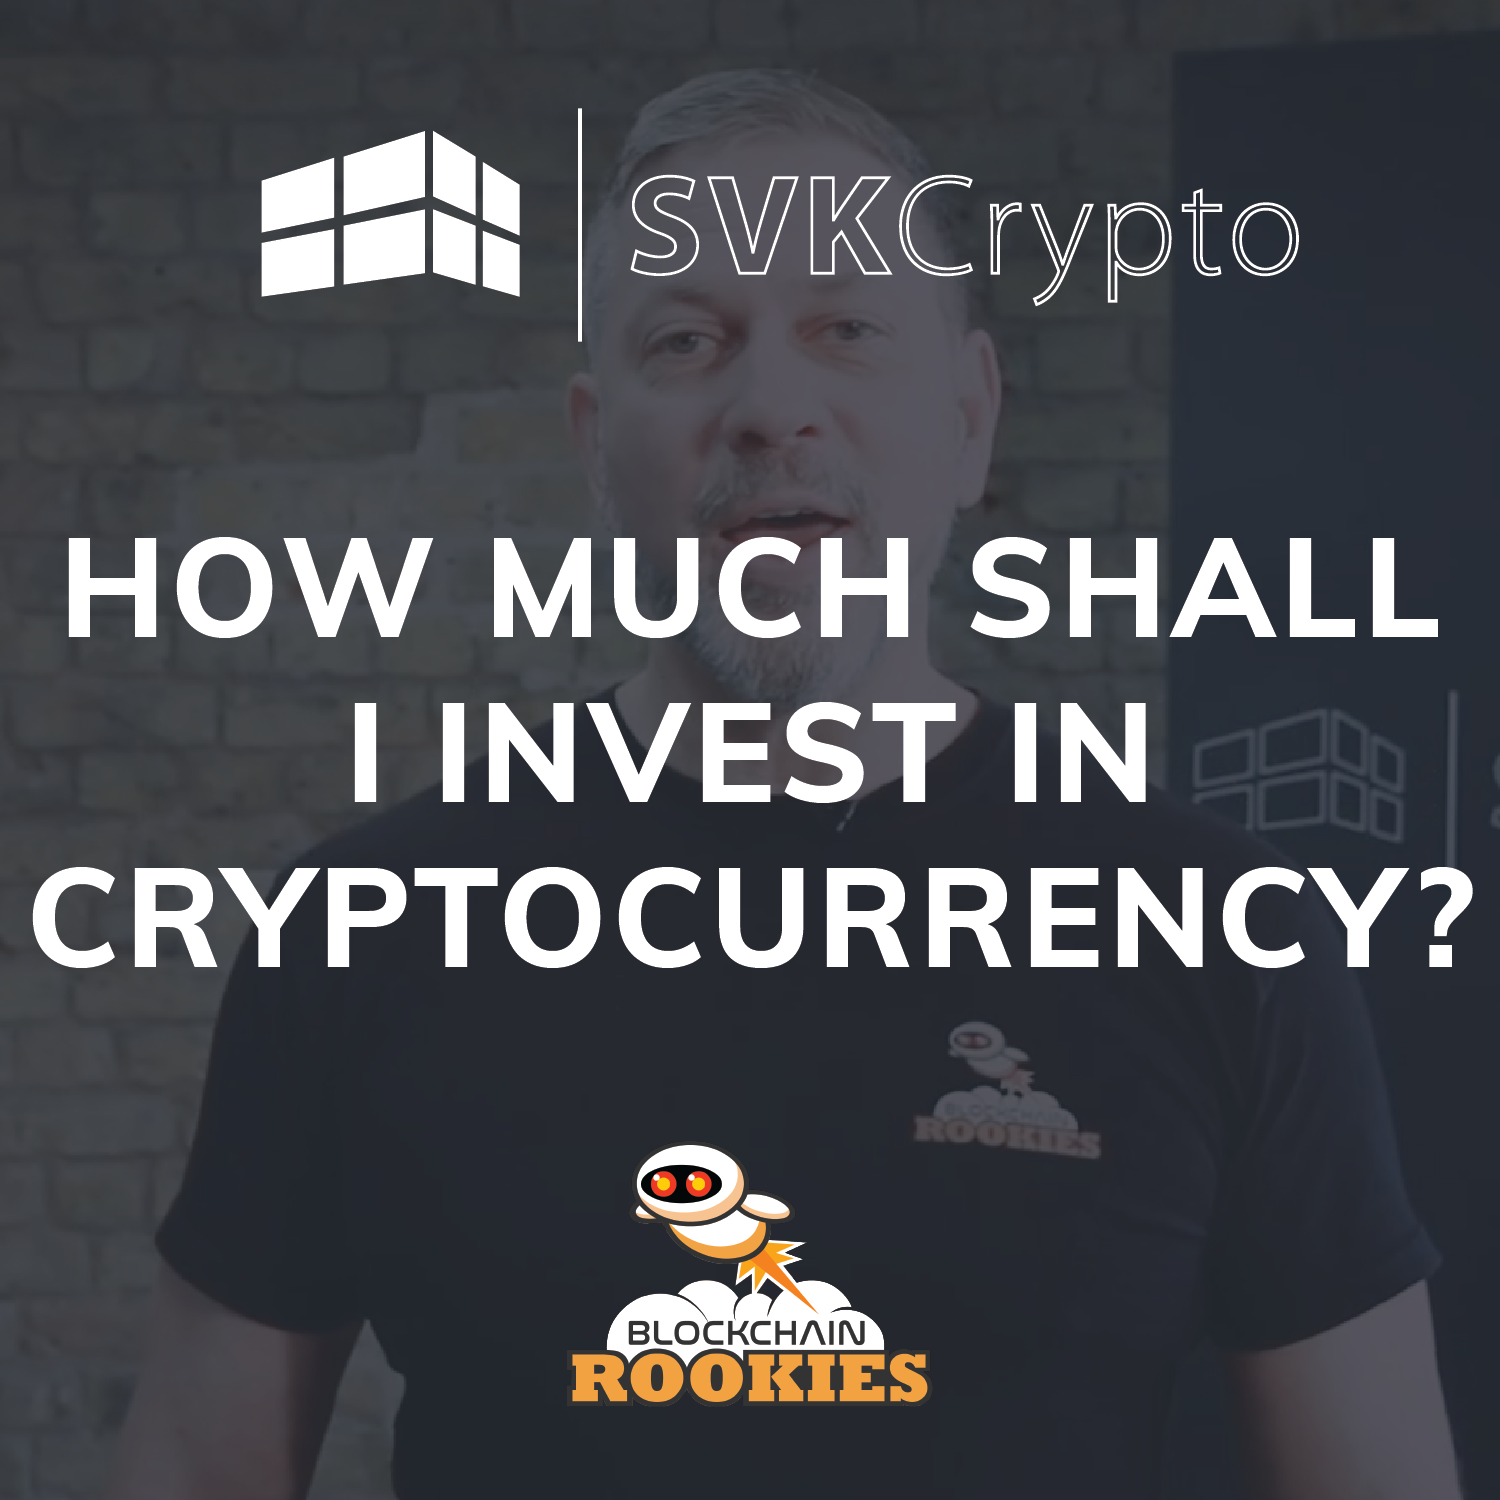 Should i invest crypto or blockchain